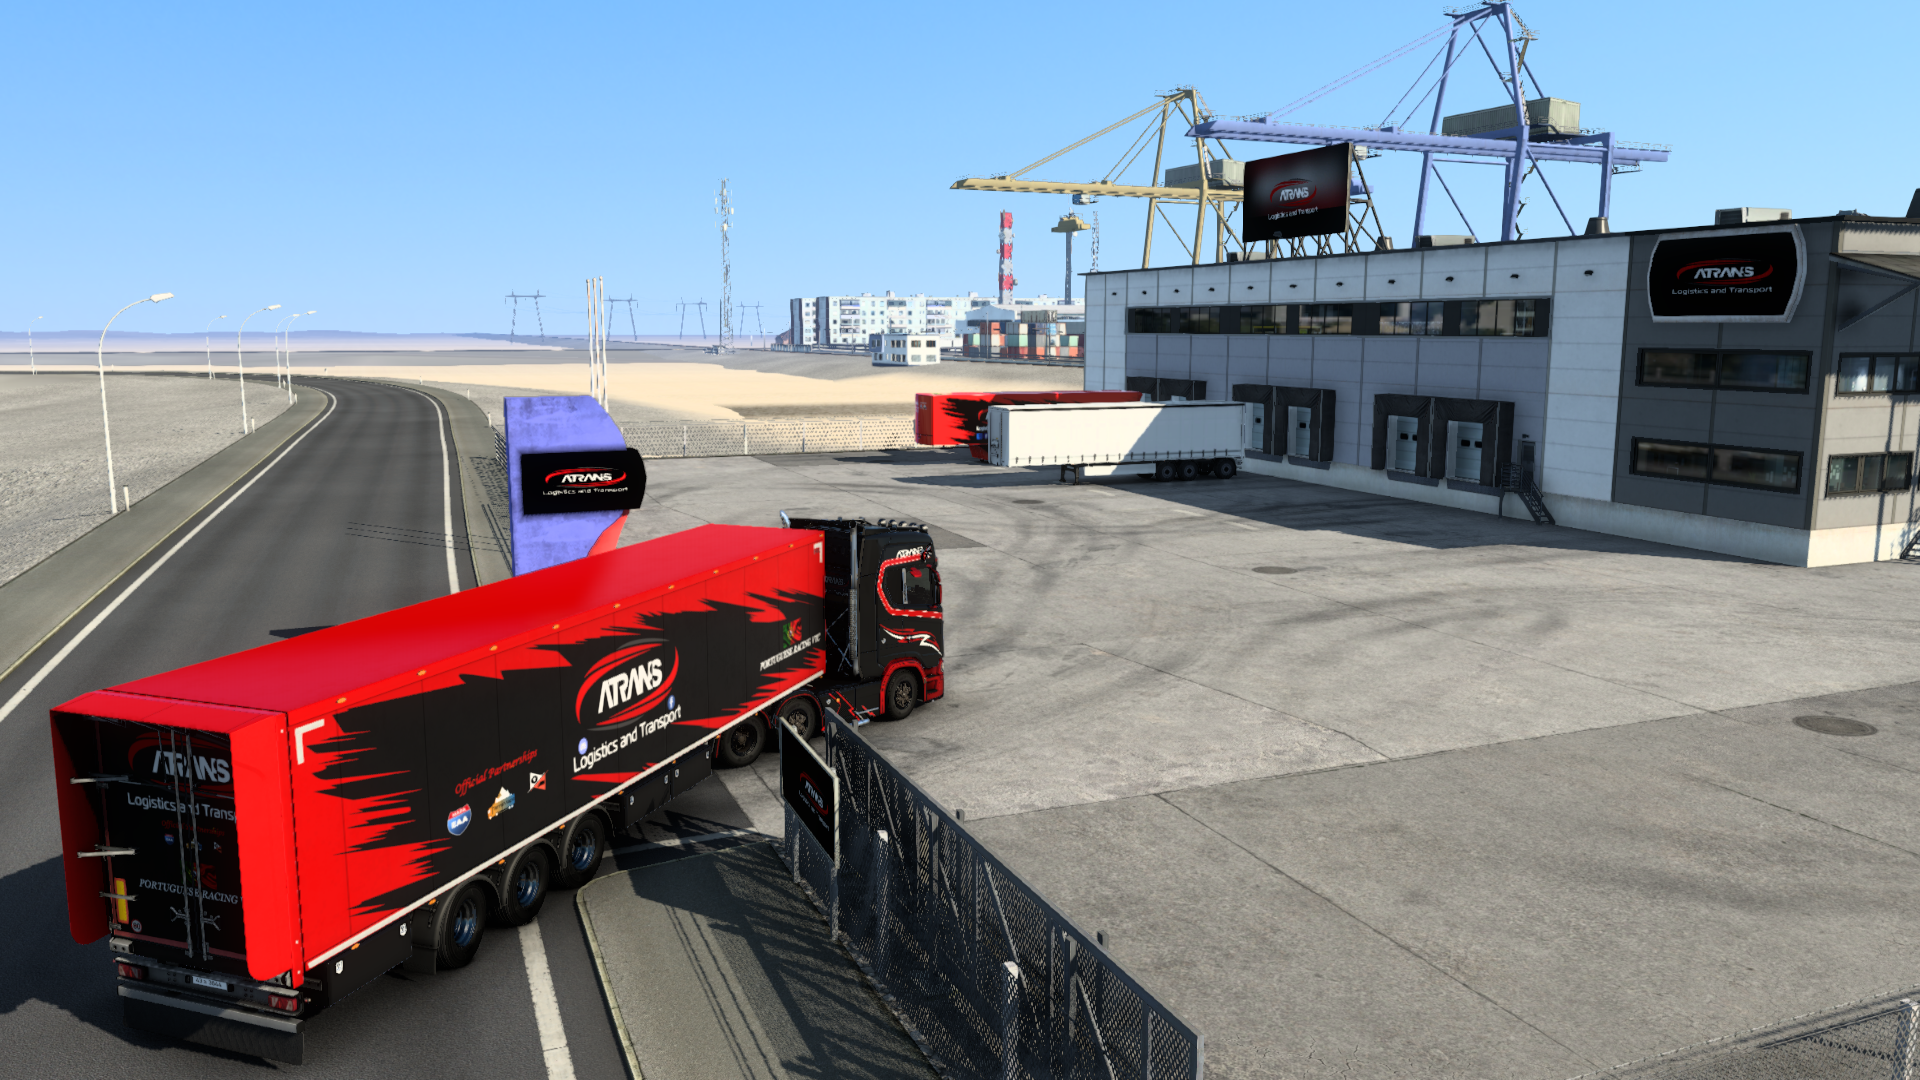 ets2_20210901_225256_00.png